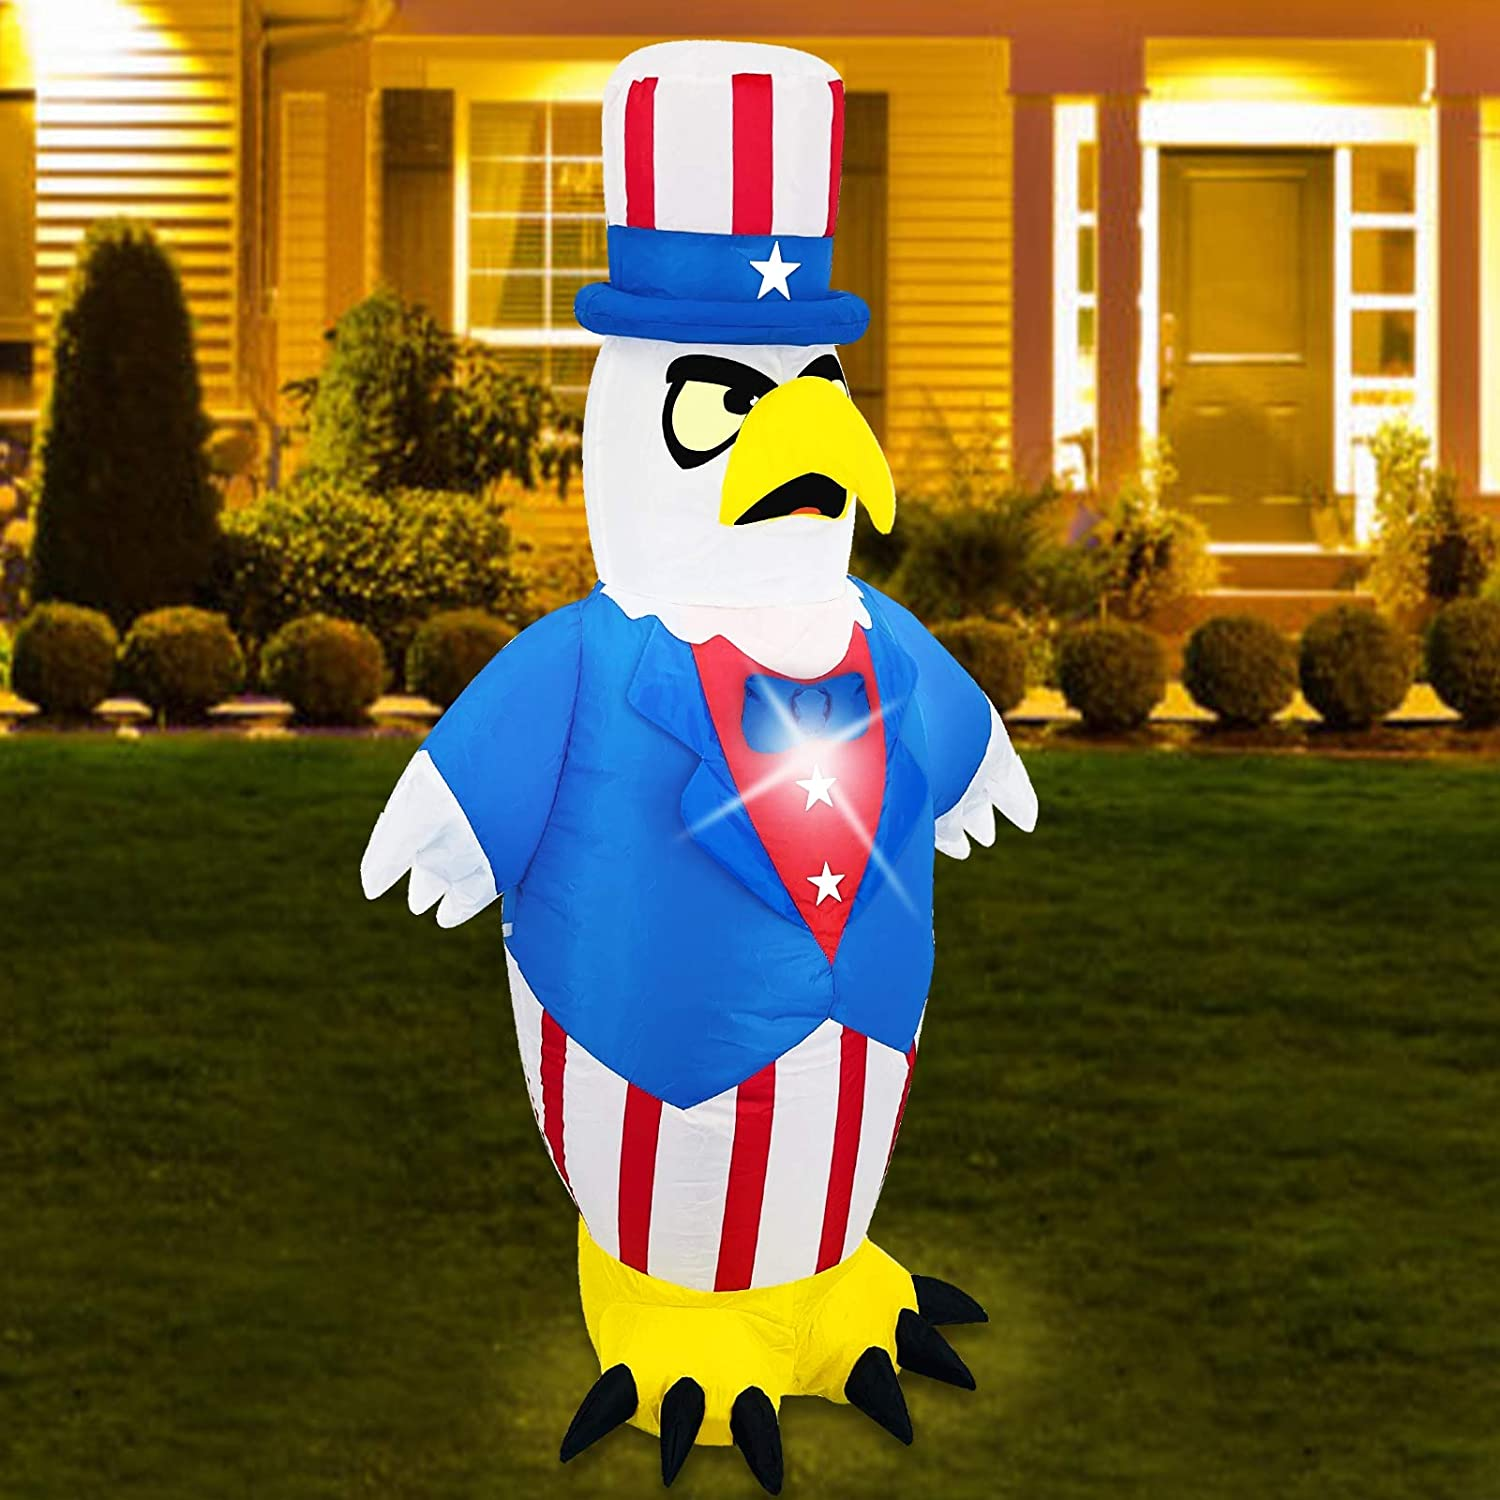 TURNMEON 3.5 Foot 4th of July Inflatables Outdoor Decoration Blow up Eagle Uncle Sam with Led Light Tether Stake Independence Day Memorial Day Patriotic Decoration Yard Lawn Garden Home,Red White Blue